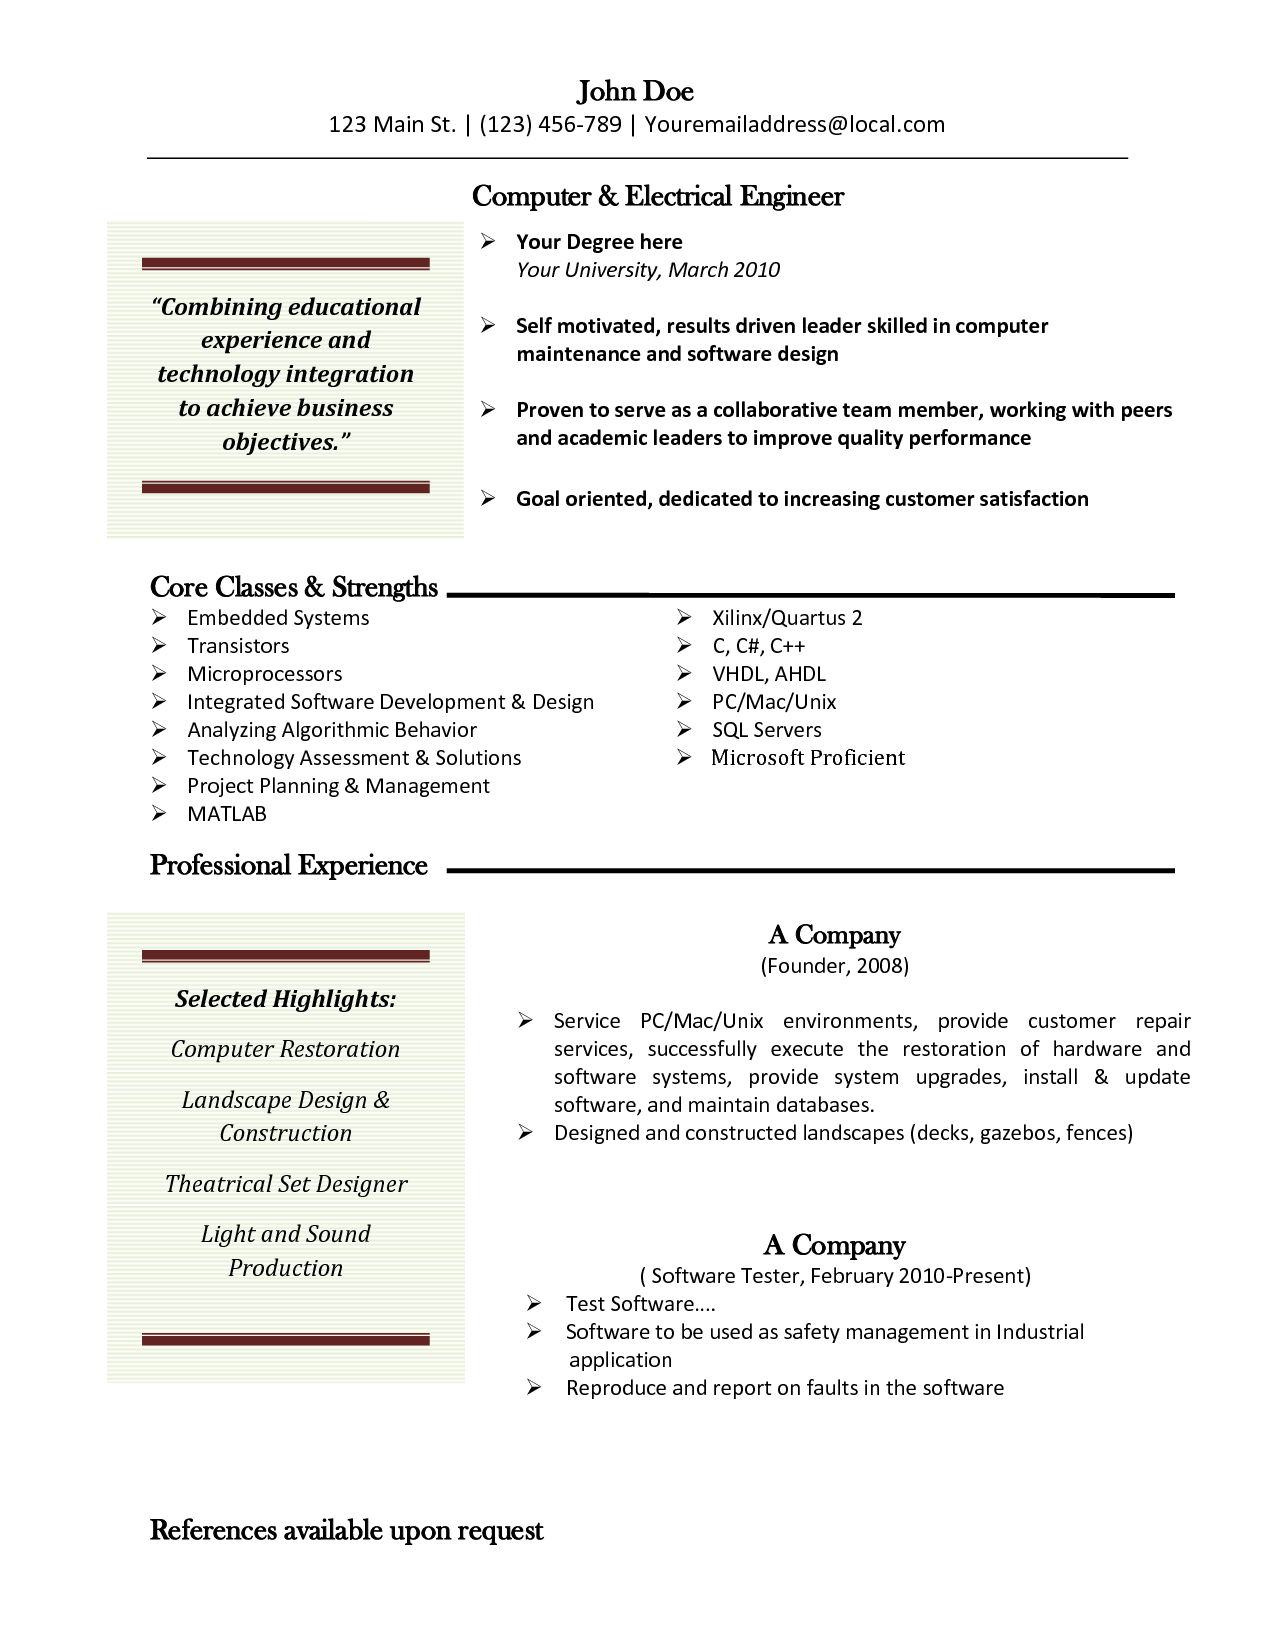 free resume templates for mac best templatefree resume templates cover letter examples - Free Cv Templates Word Mac